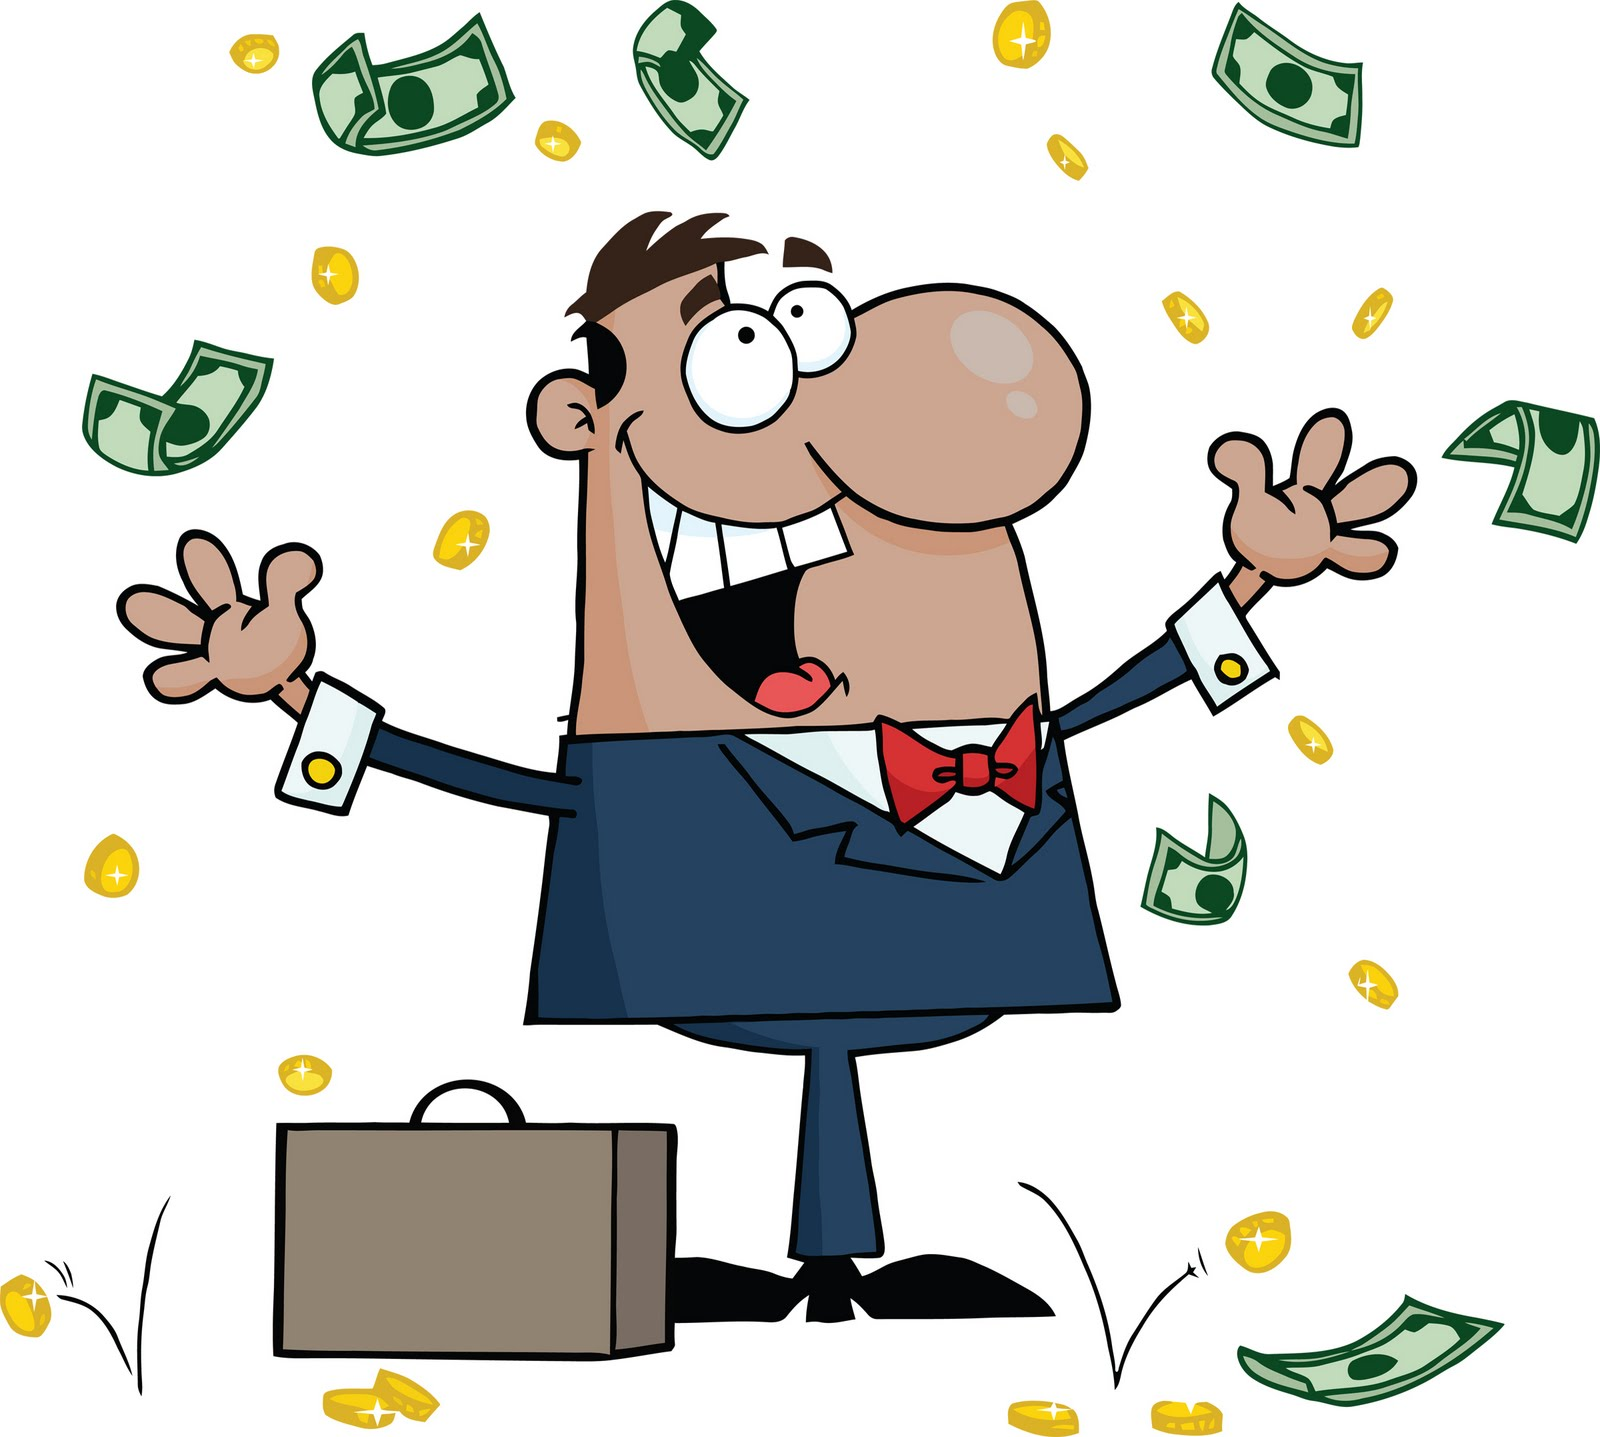 Cheerful rich man in graphic representation free image